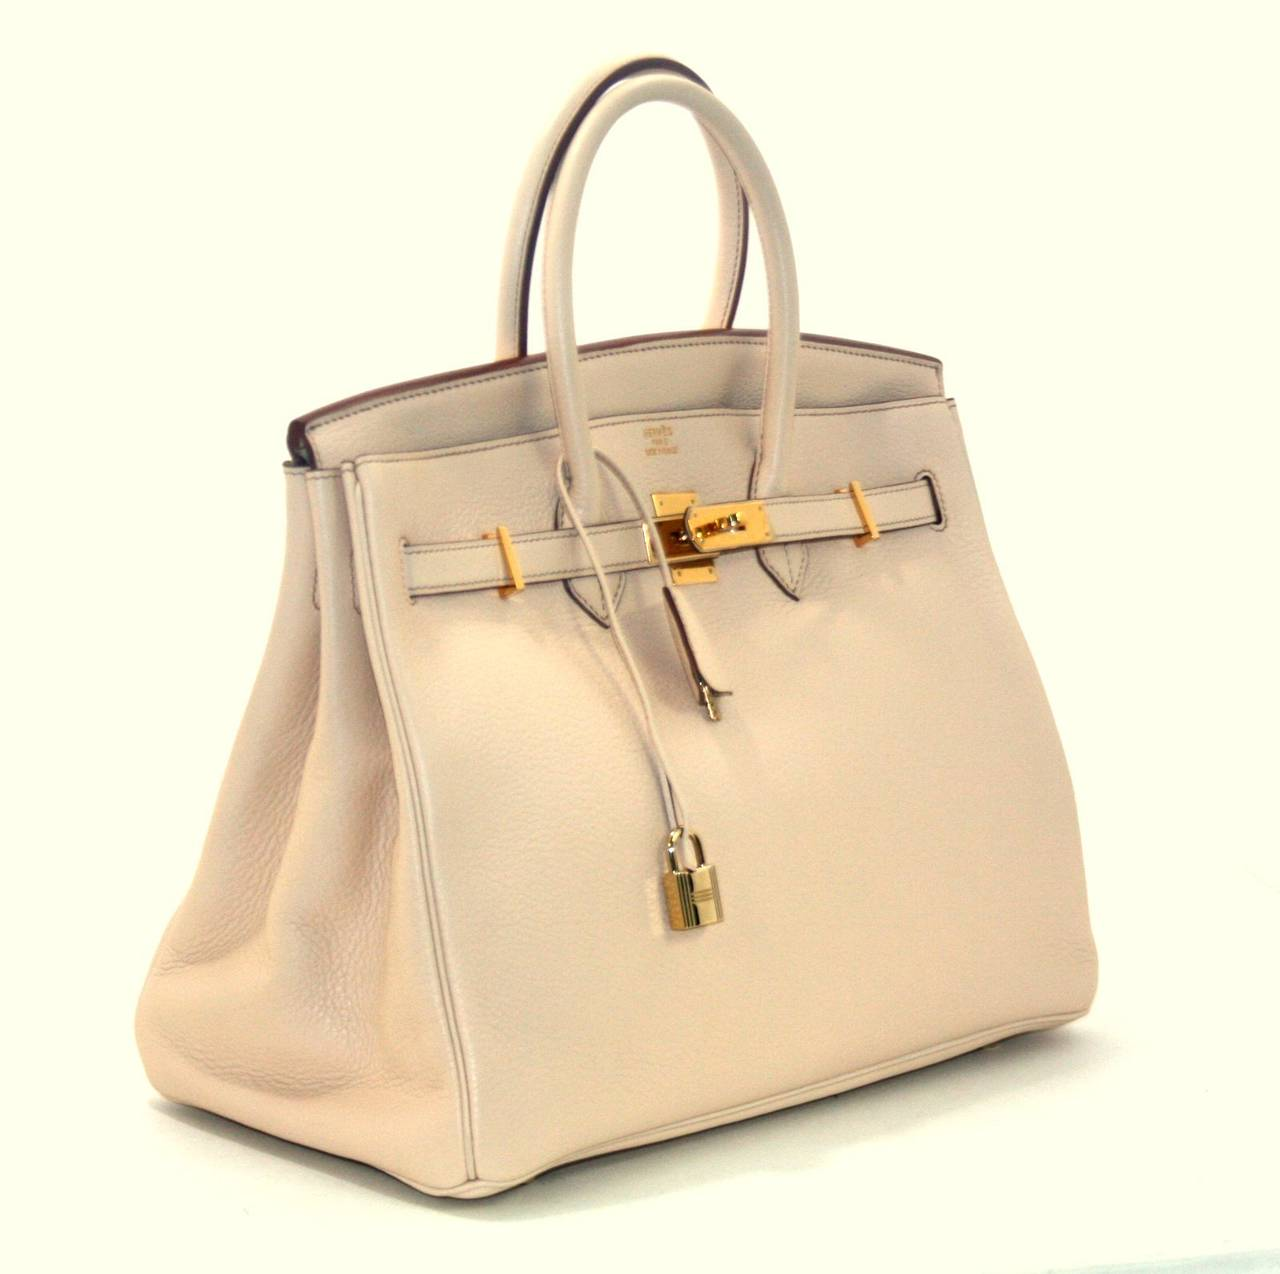 Herm��s Birkin Bag in Beige Clemence with Gold, 35 cm size at 1stdibs